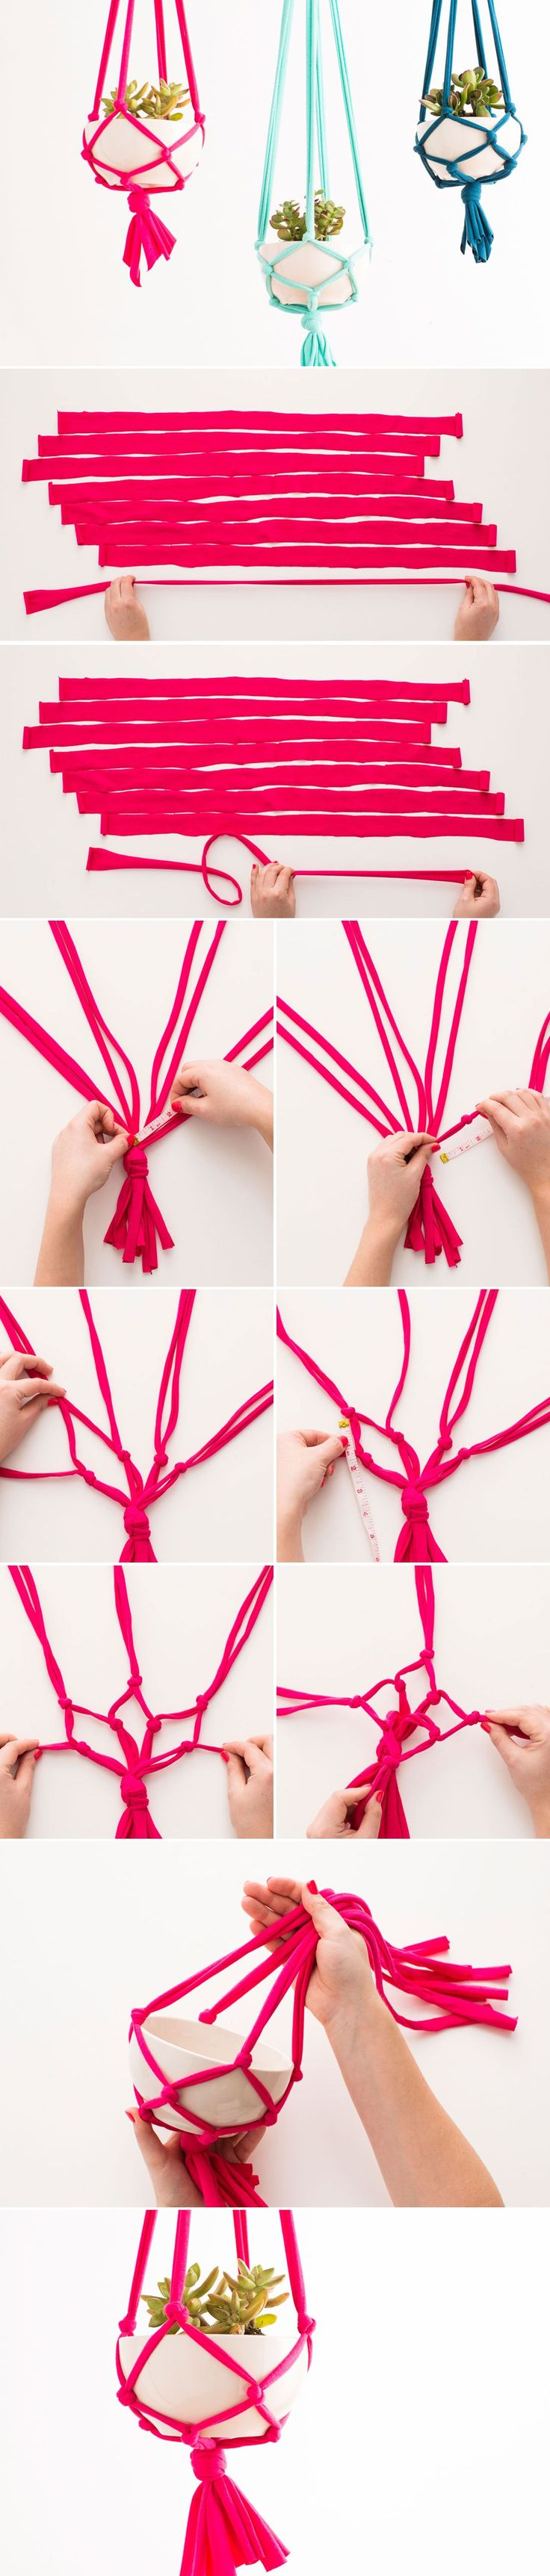 Learn how to make your own DIY Macrame Plant Hangers